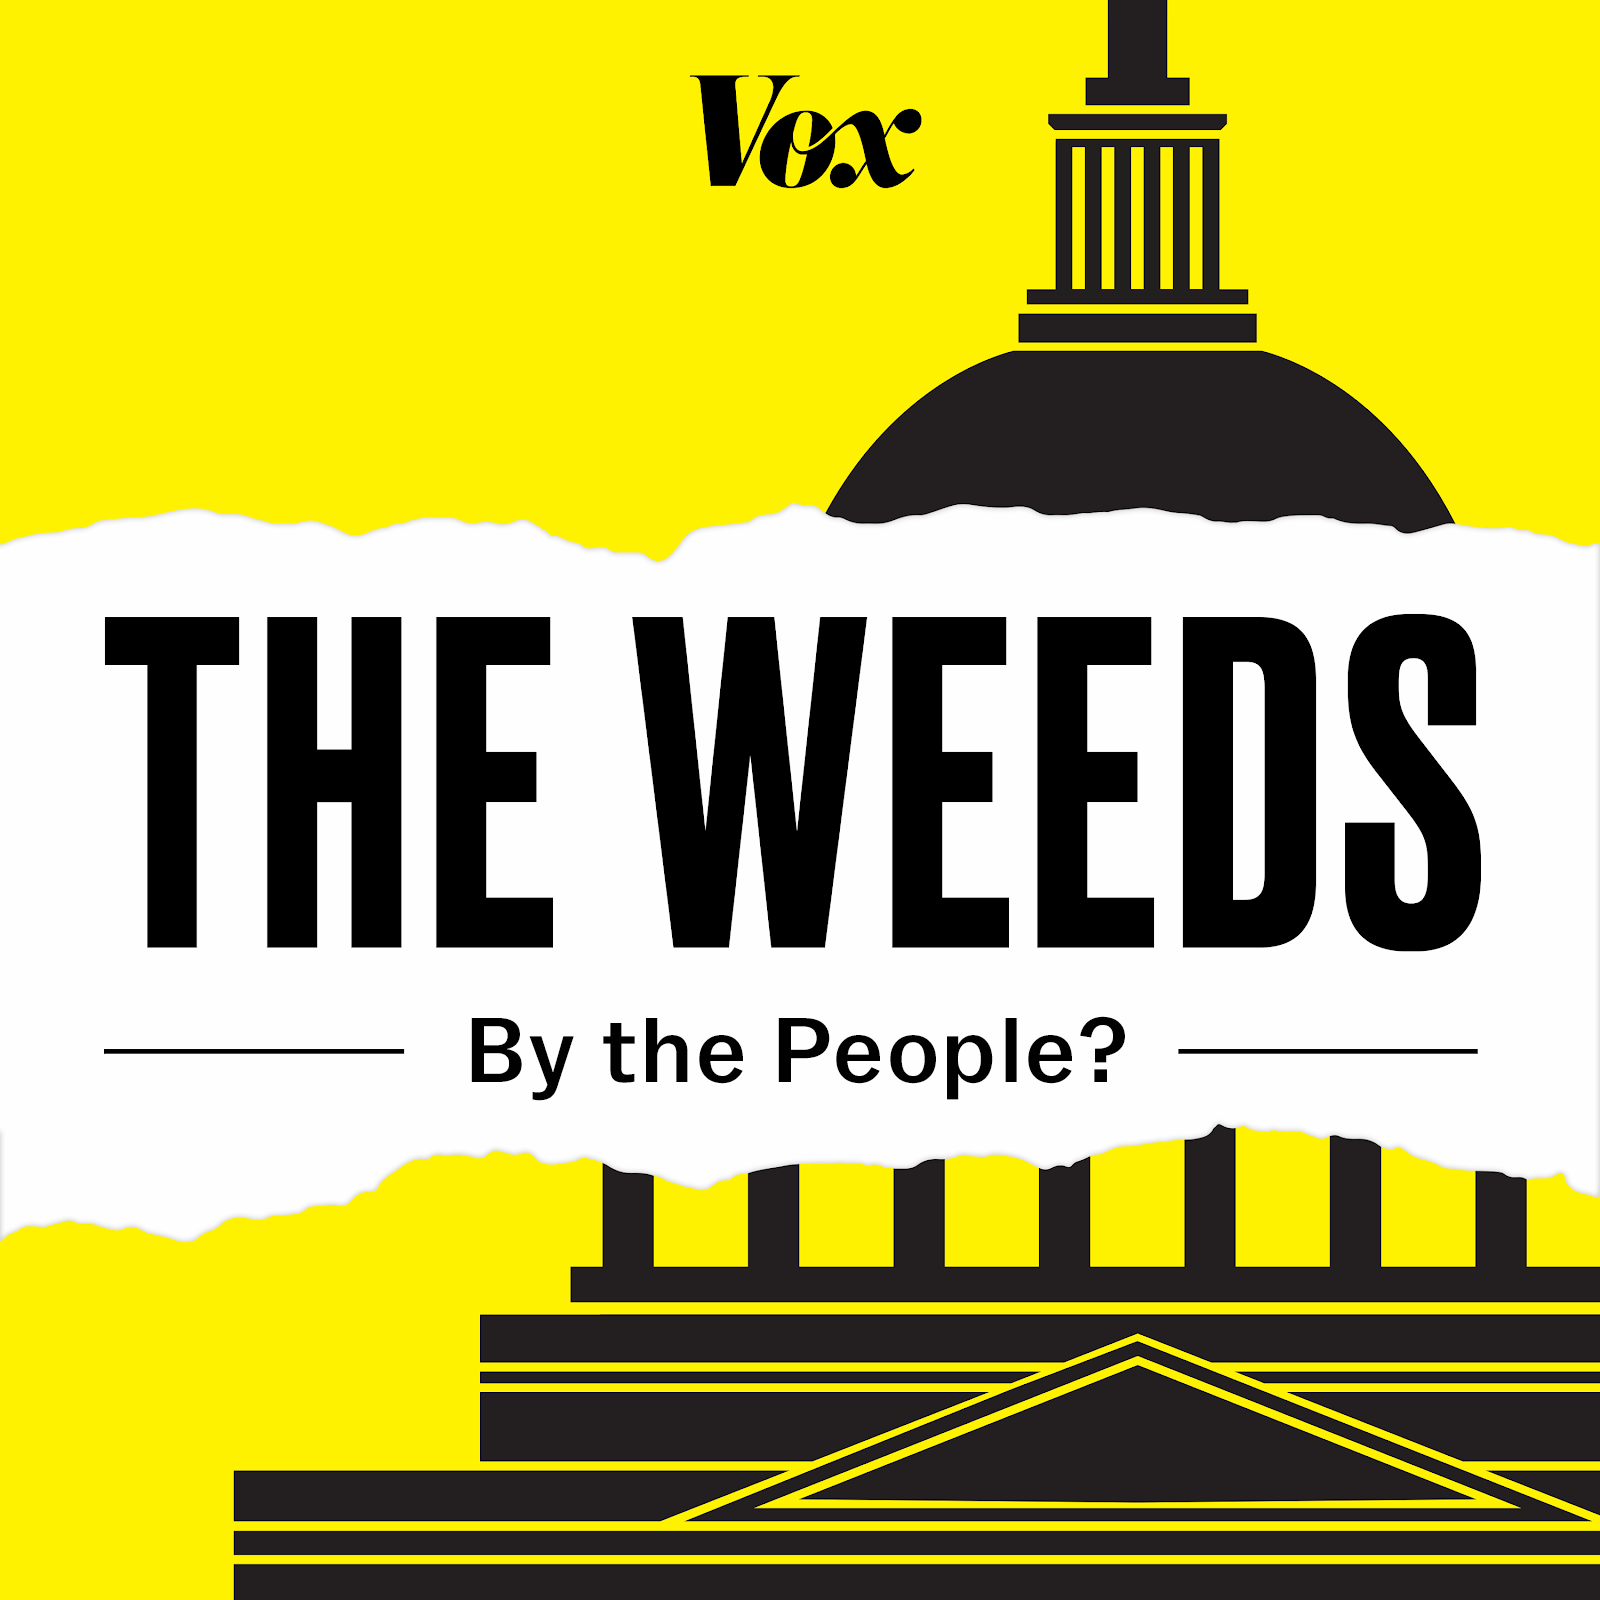 By the People: The Supreme Court's war on democracy